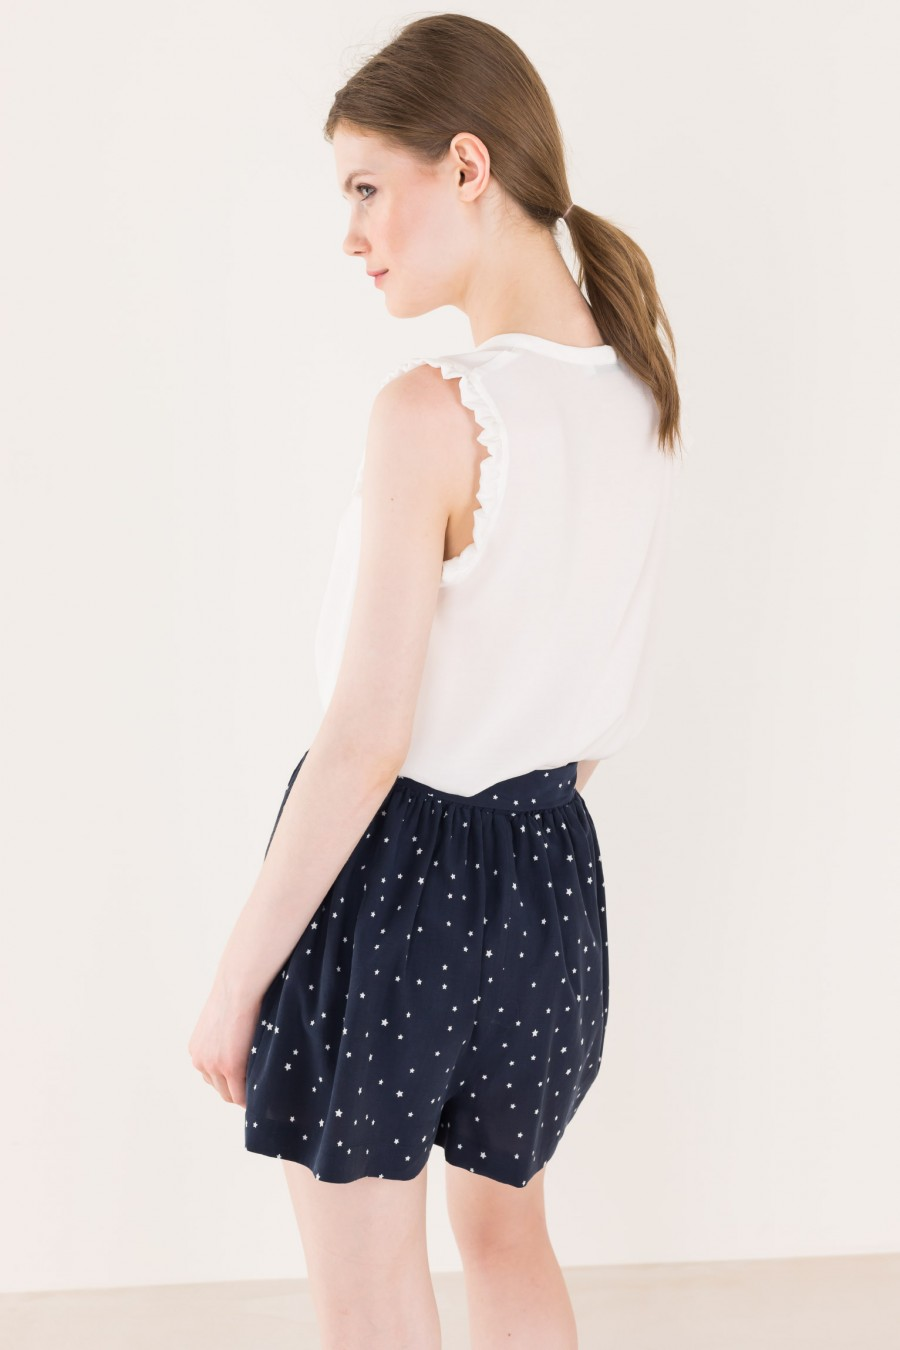 Blue mini skirt-pants with strars pattern